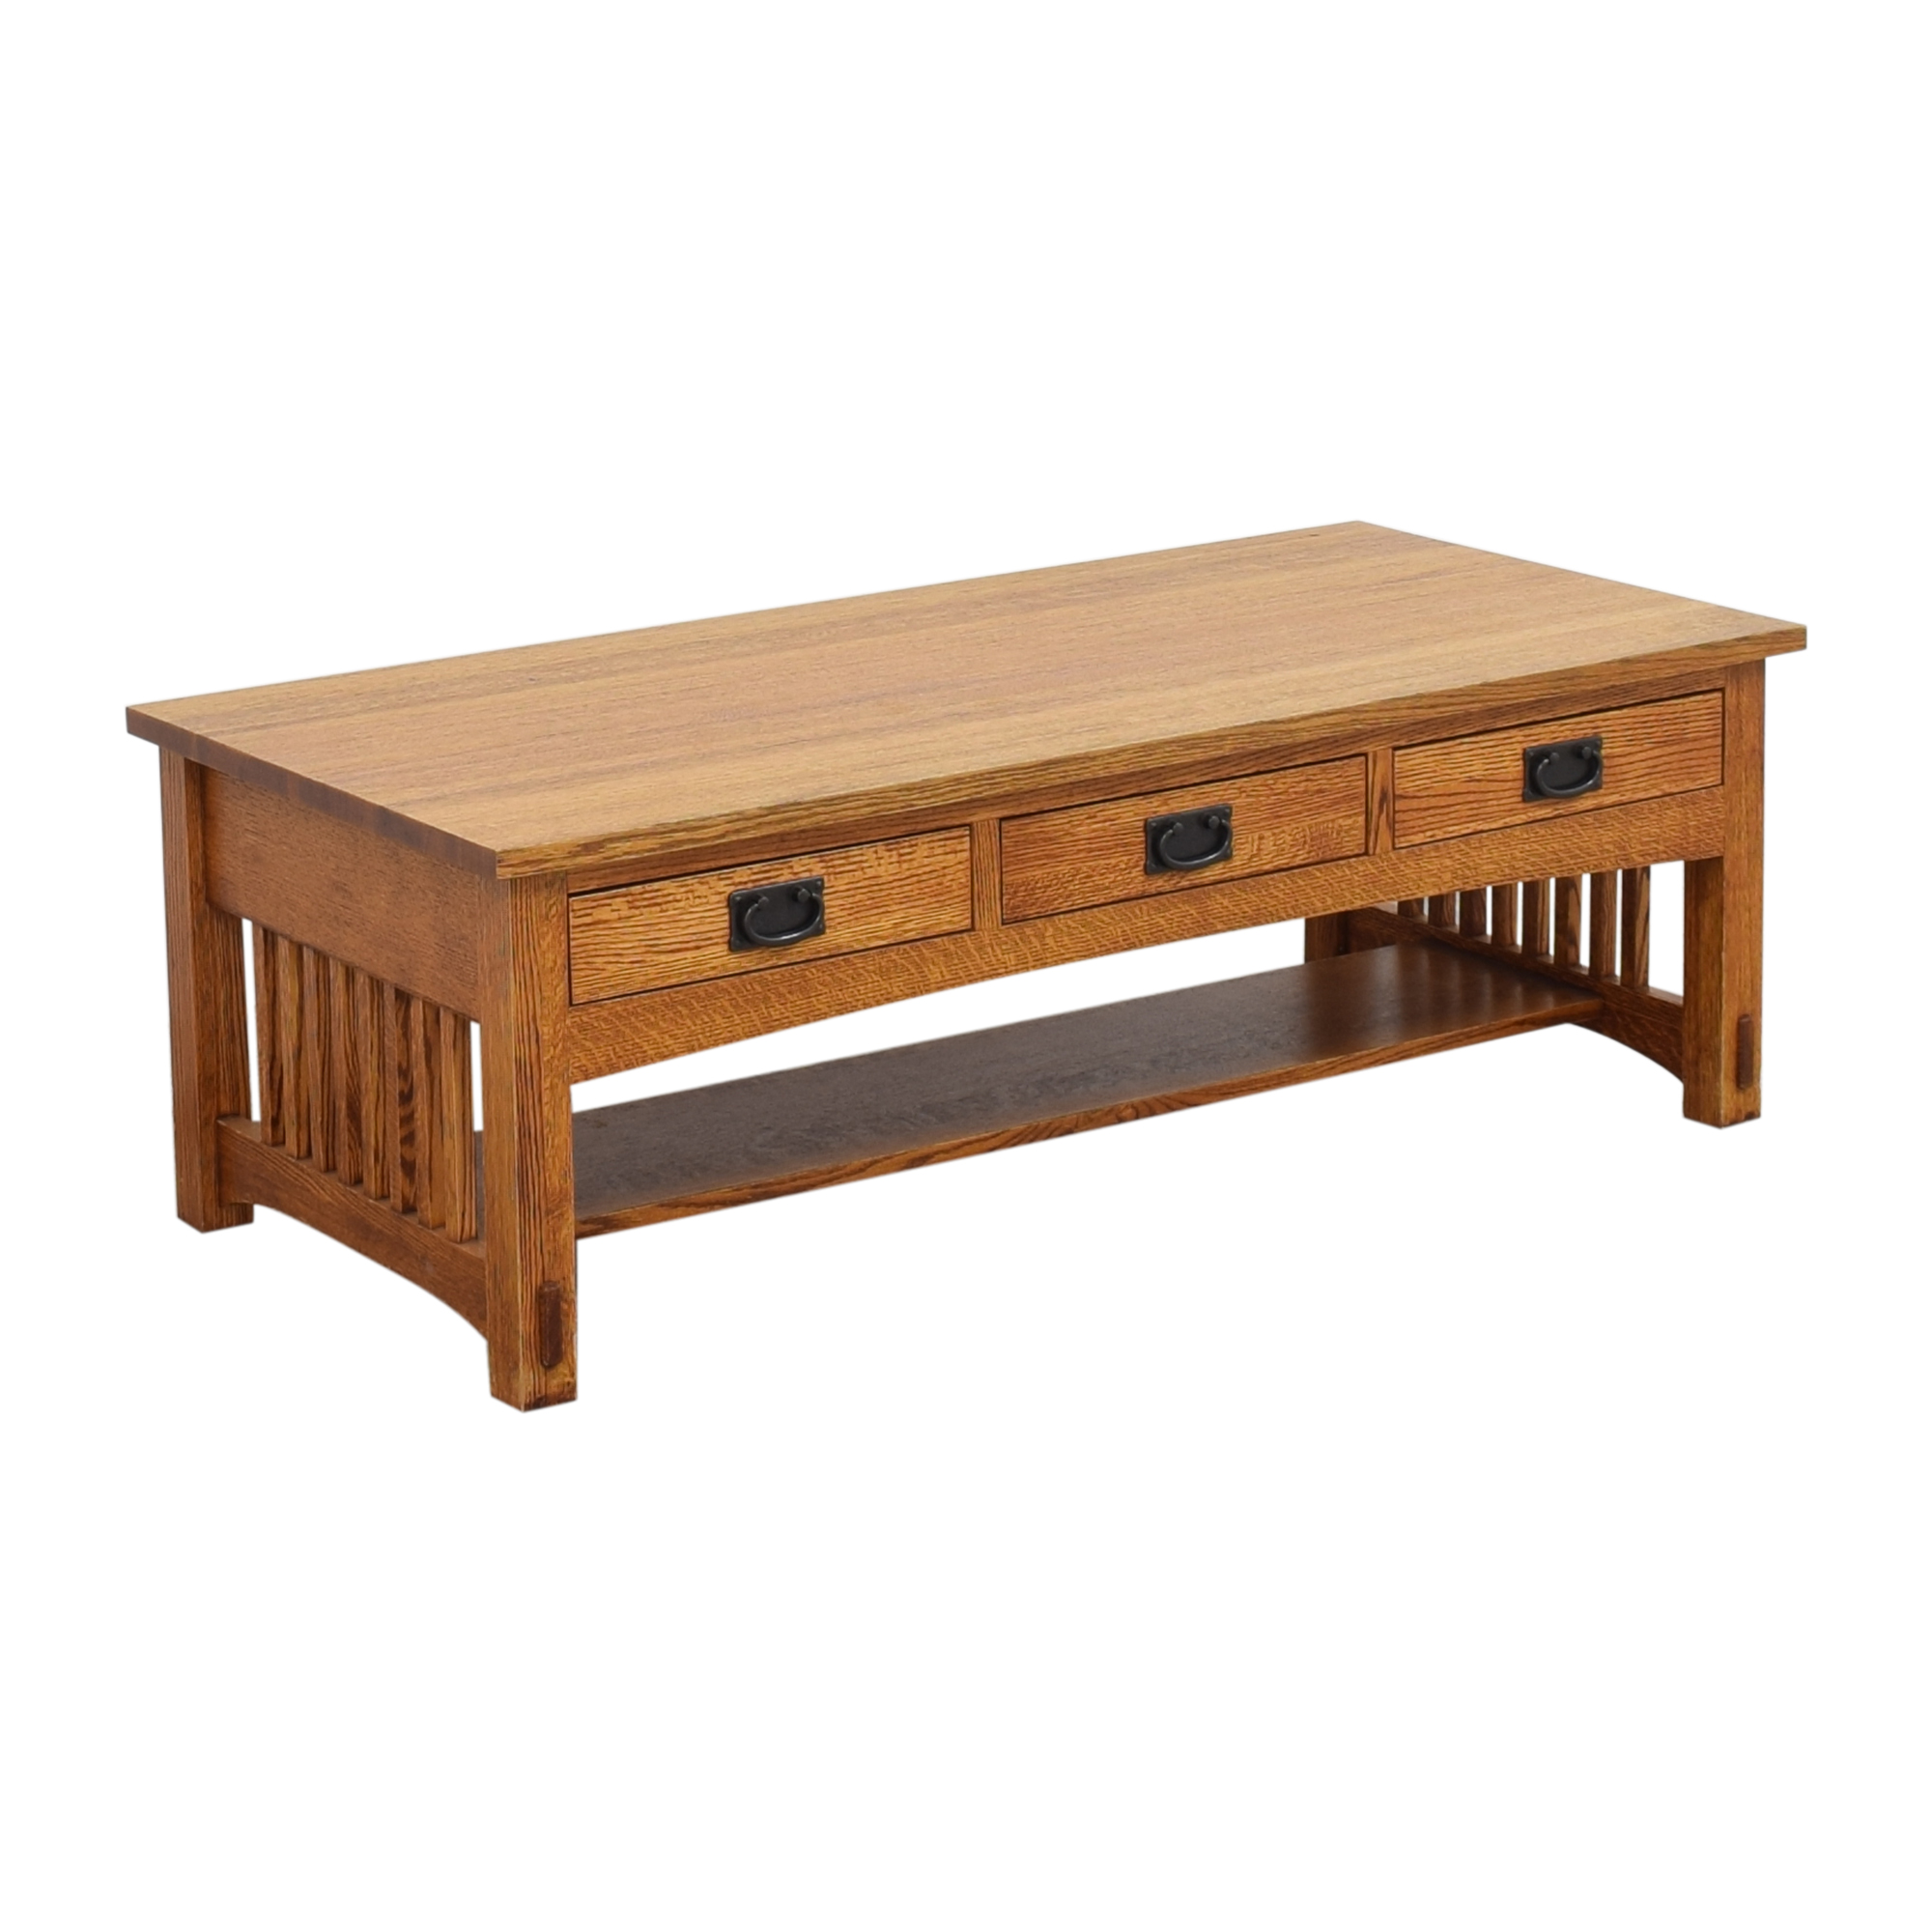 shop Royal Craftsman Mission Coffee Table Royal Craftsman Coffee Tables